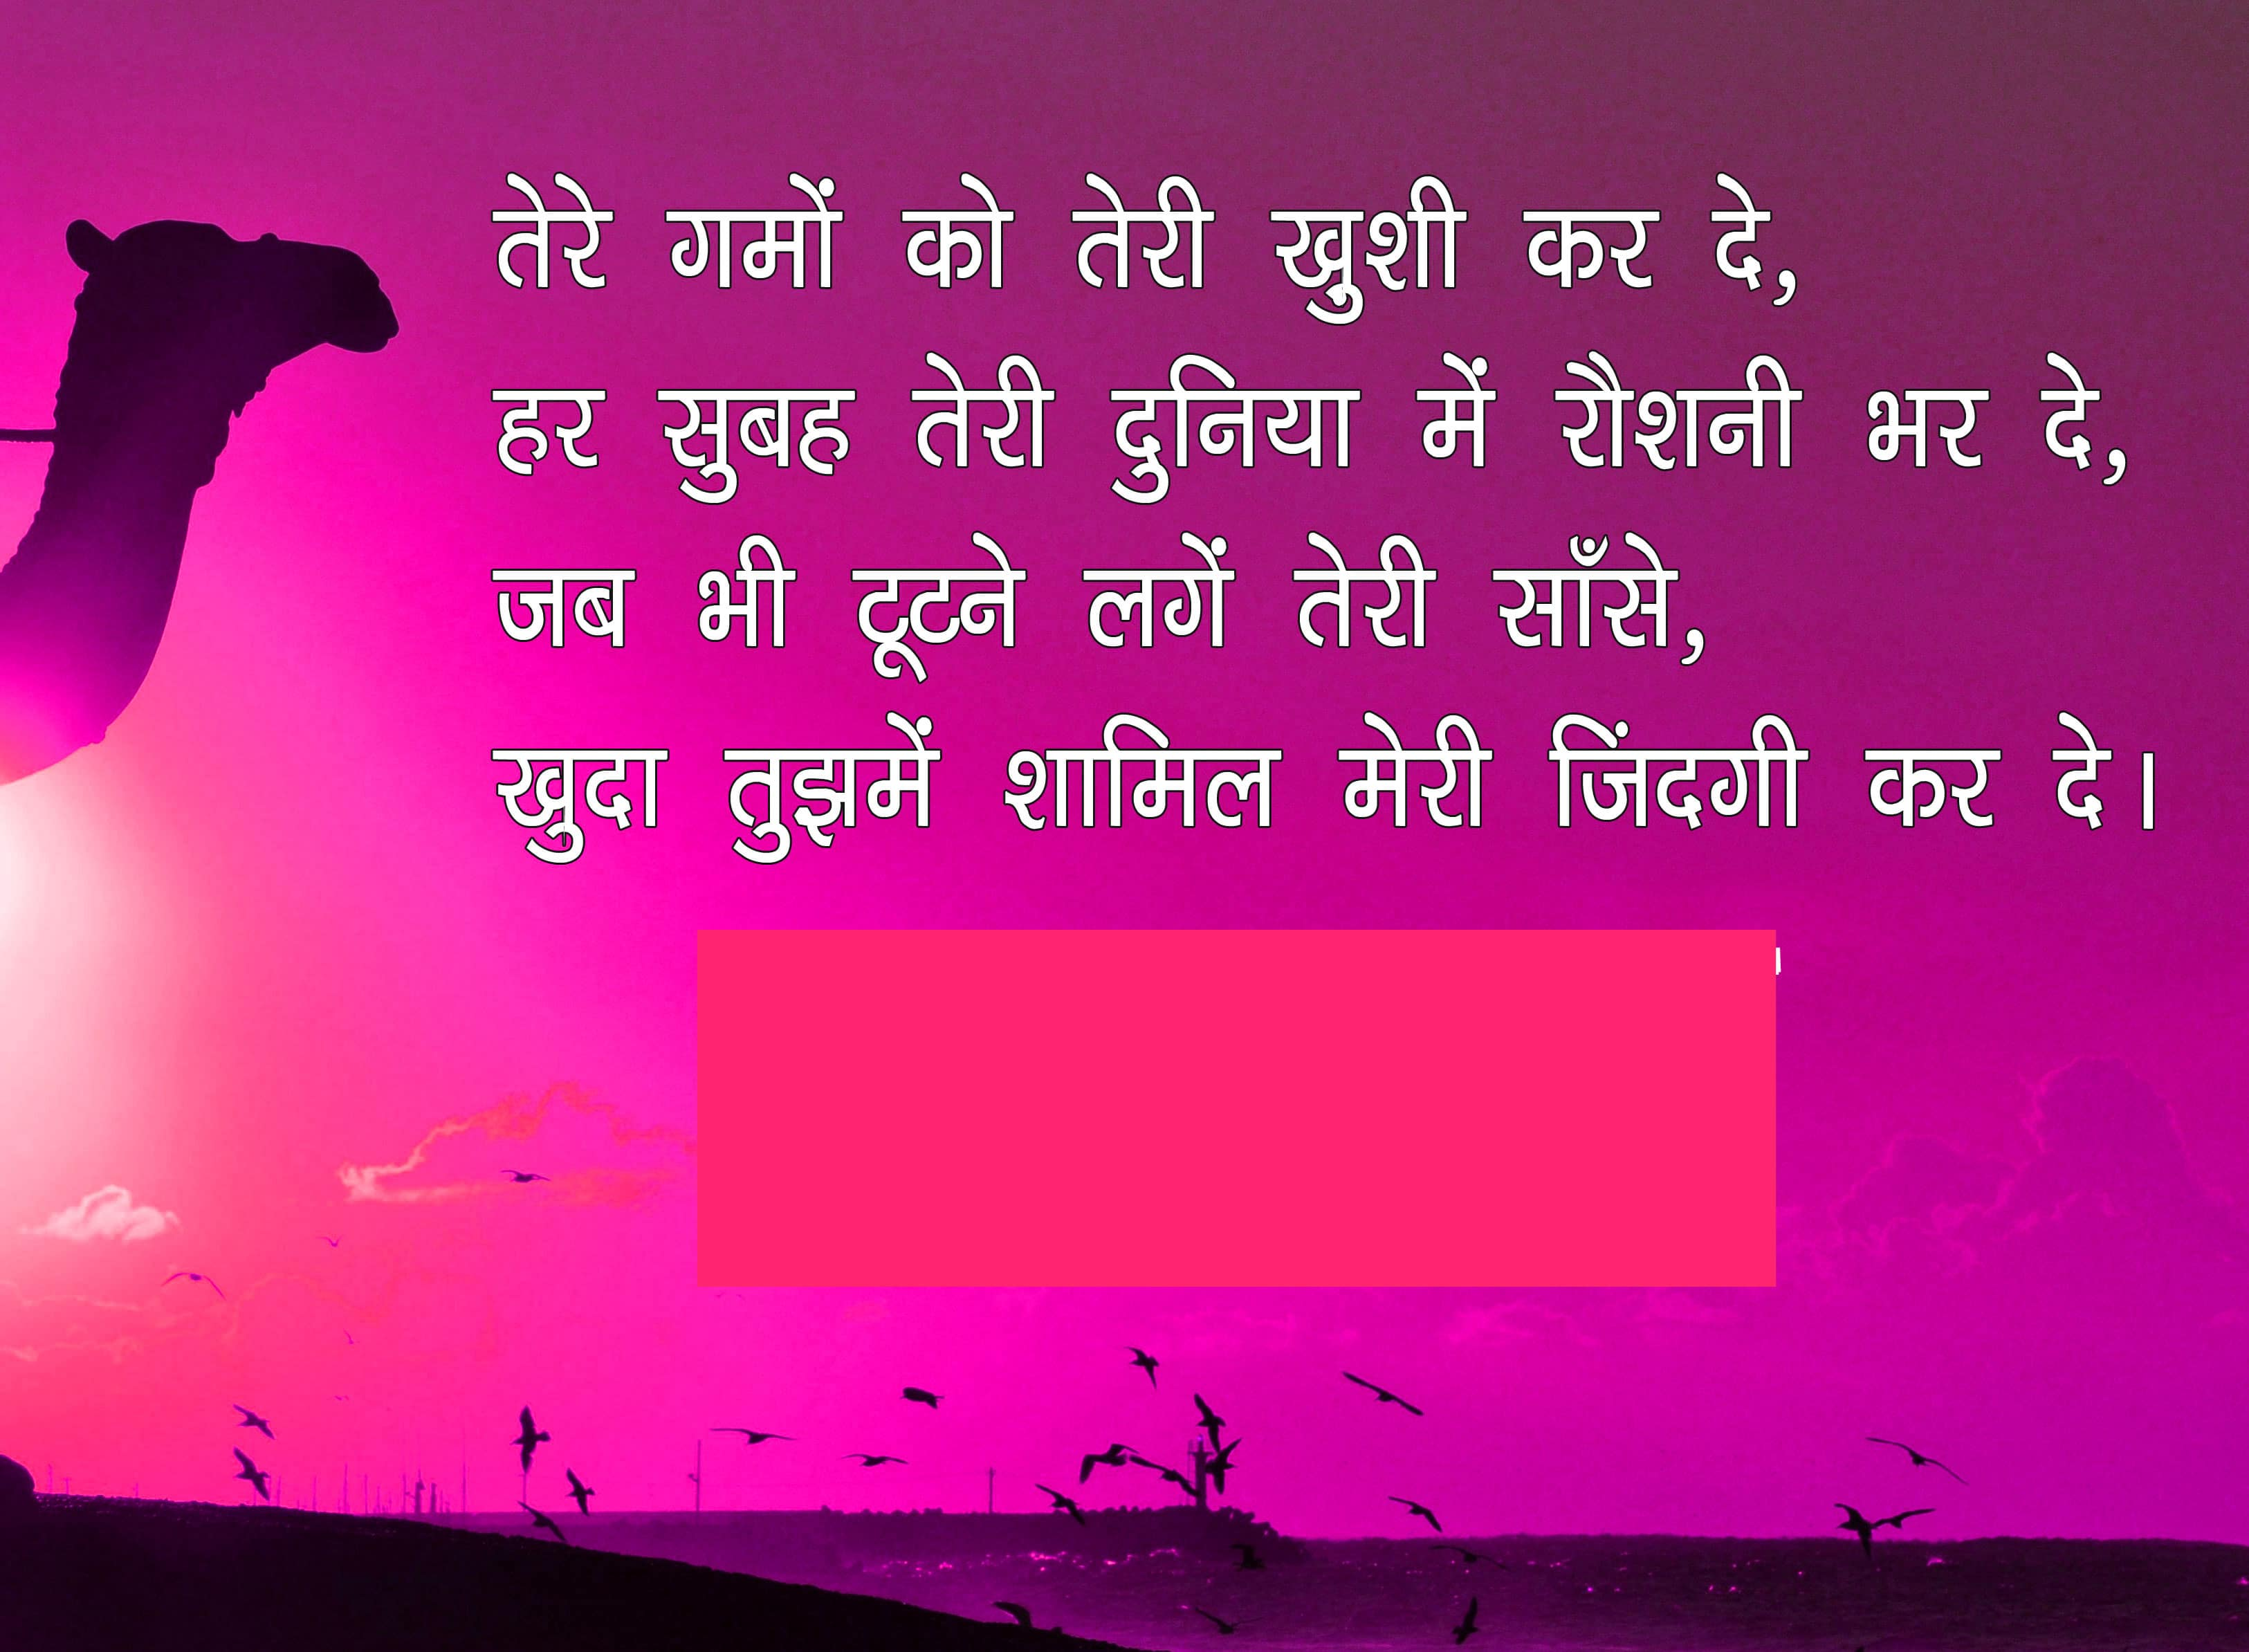 Latest Hindi Shayari Images HD Download 96